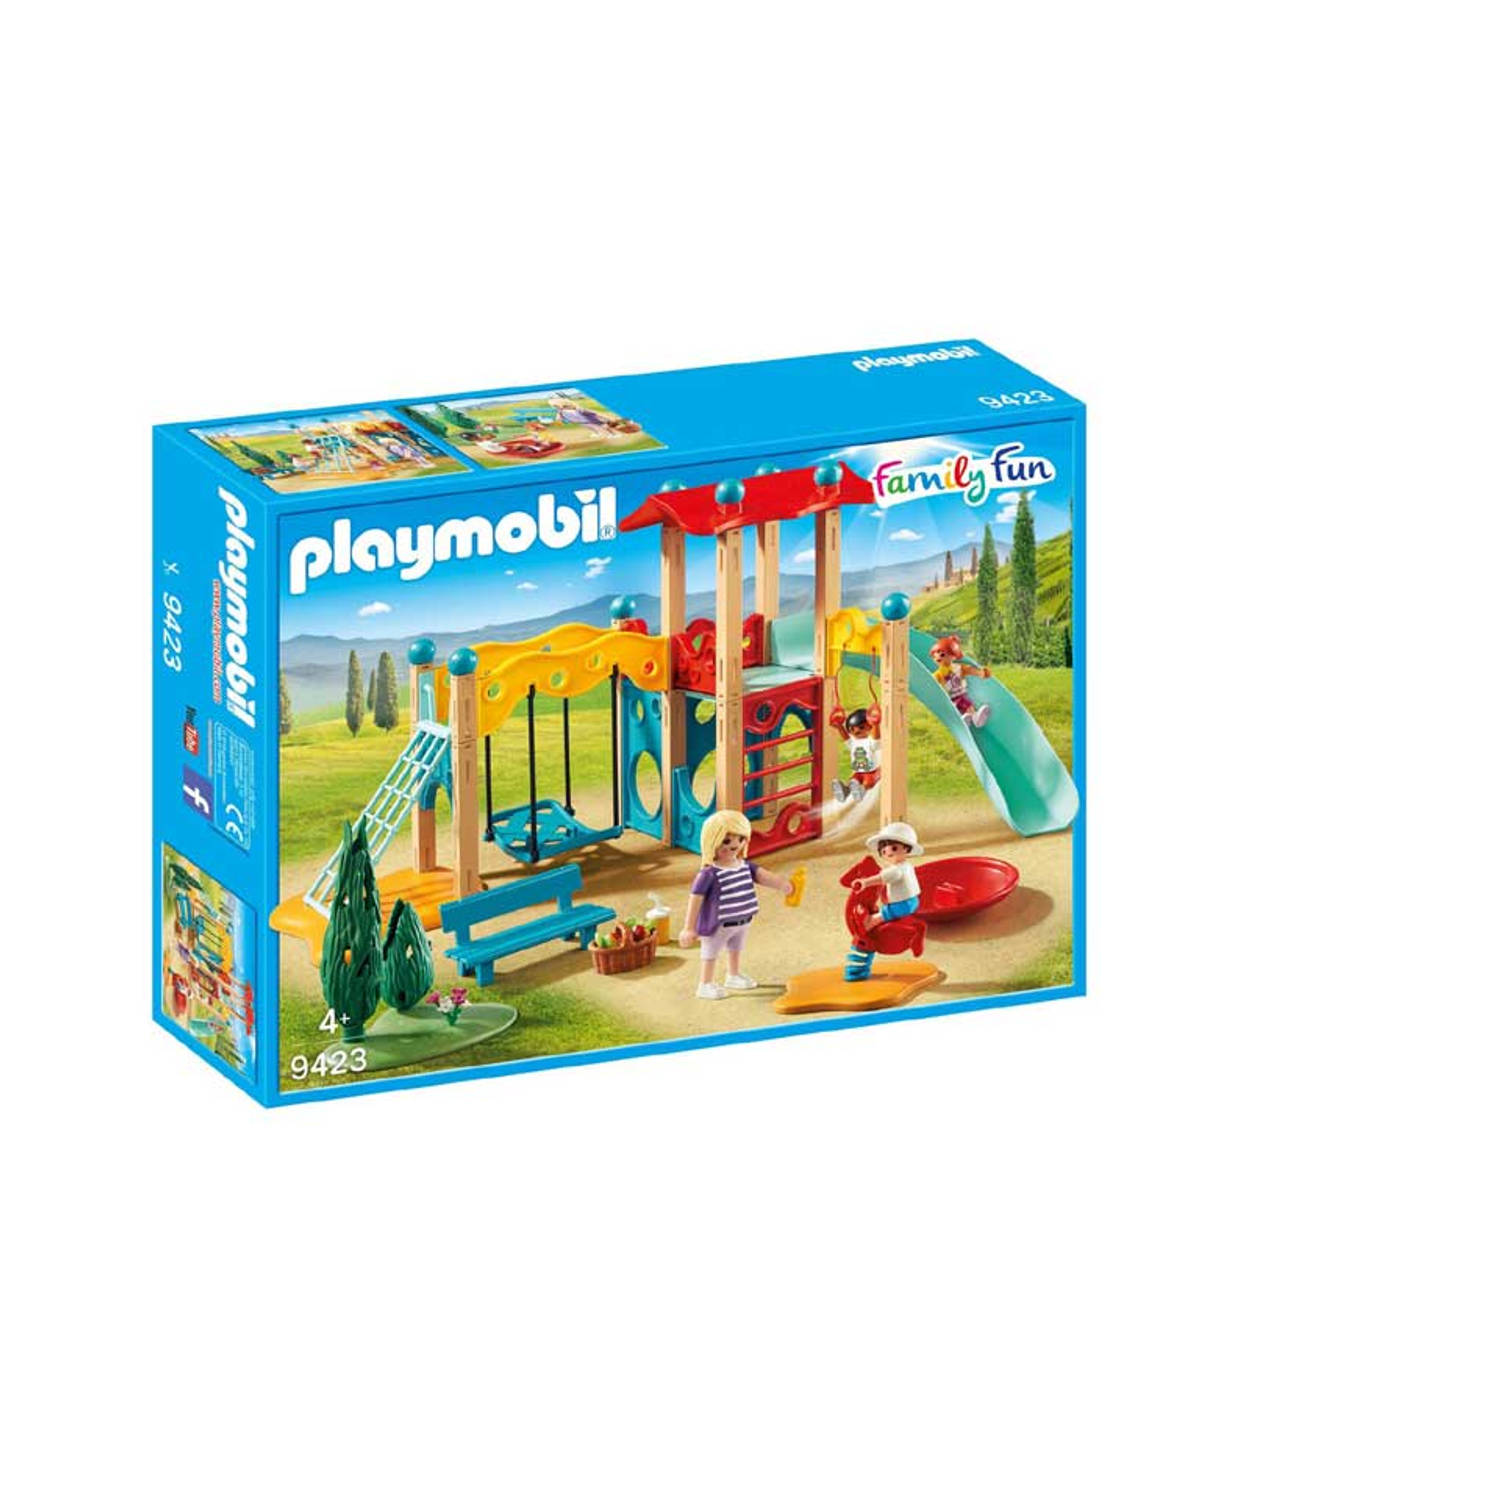 PLAYMOBIL Family Fun grote speeltuin 9423